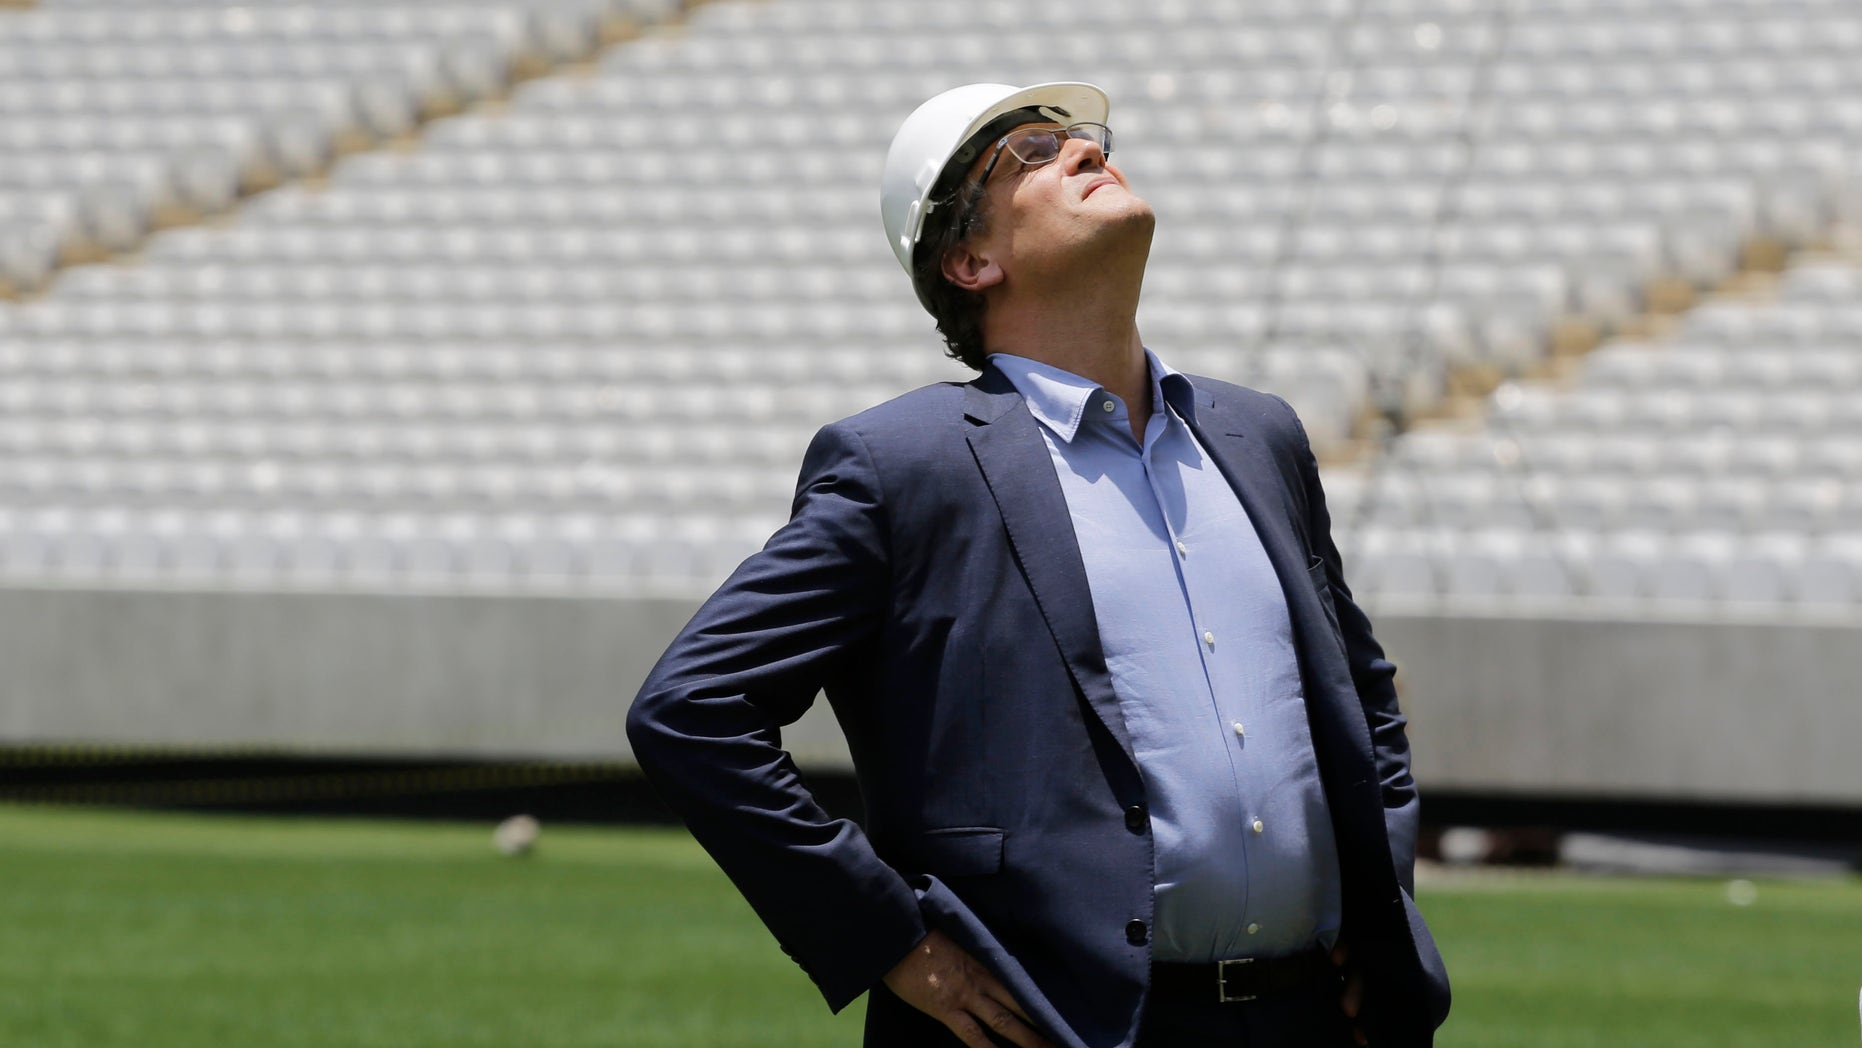 Jerome Valcke, Secretary General of FIFA is seen during an inspection tour of Arena de Sao Paulo stadium, in Sao Paulo, Brazil, Monday, Jan. 20, 2014. Members of FIFA and the 2014 WCup Local Organizing Committee started an inspection tour of stadiums in host cities across Brazil. (AP Photo/Nelson Antoine)